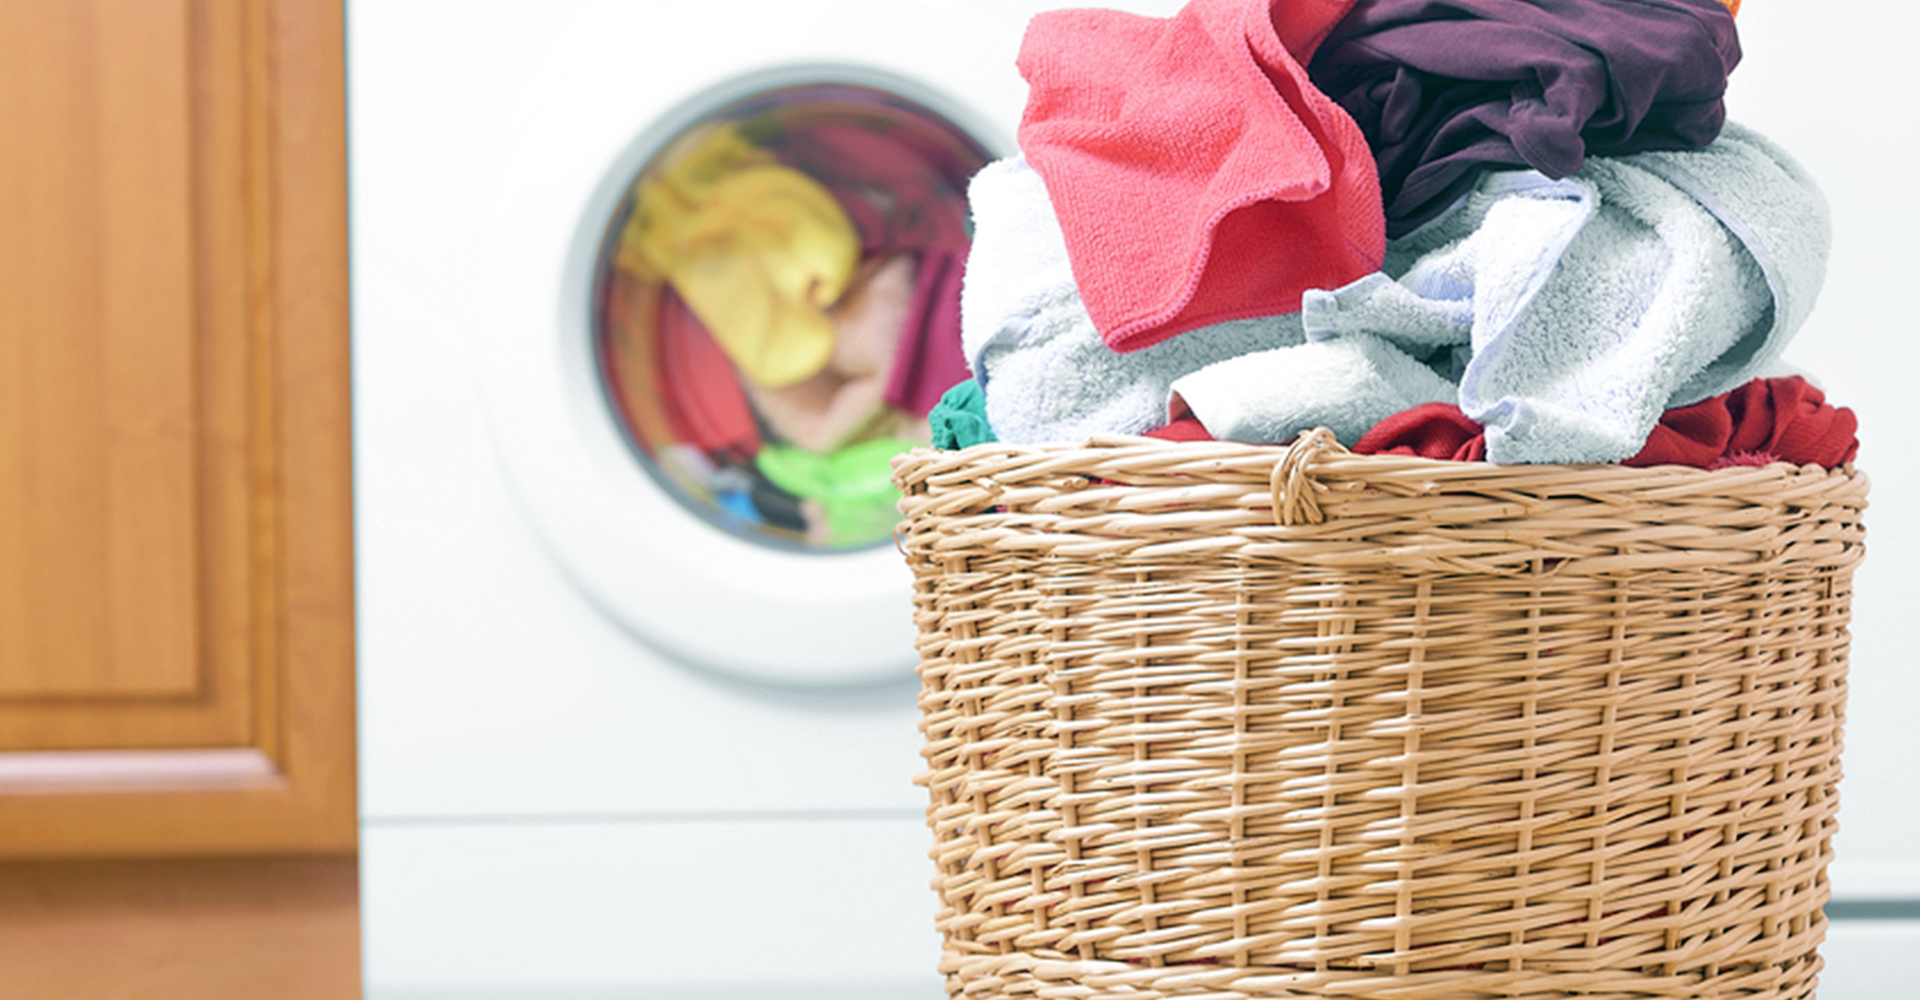 laundry-clothes